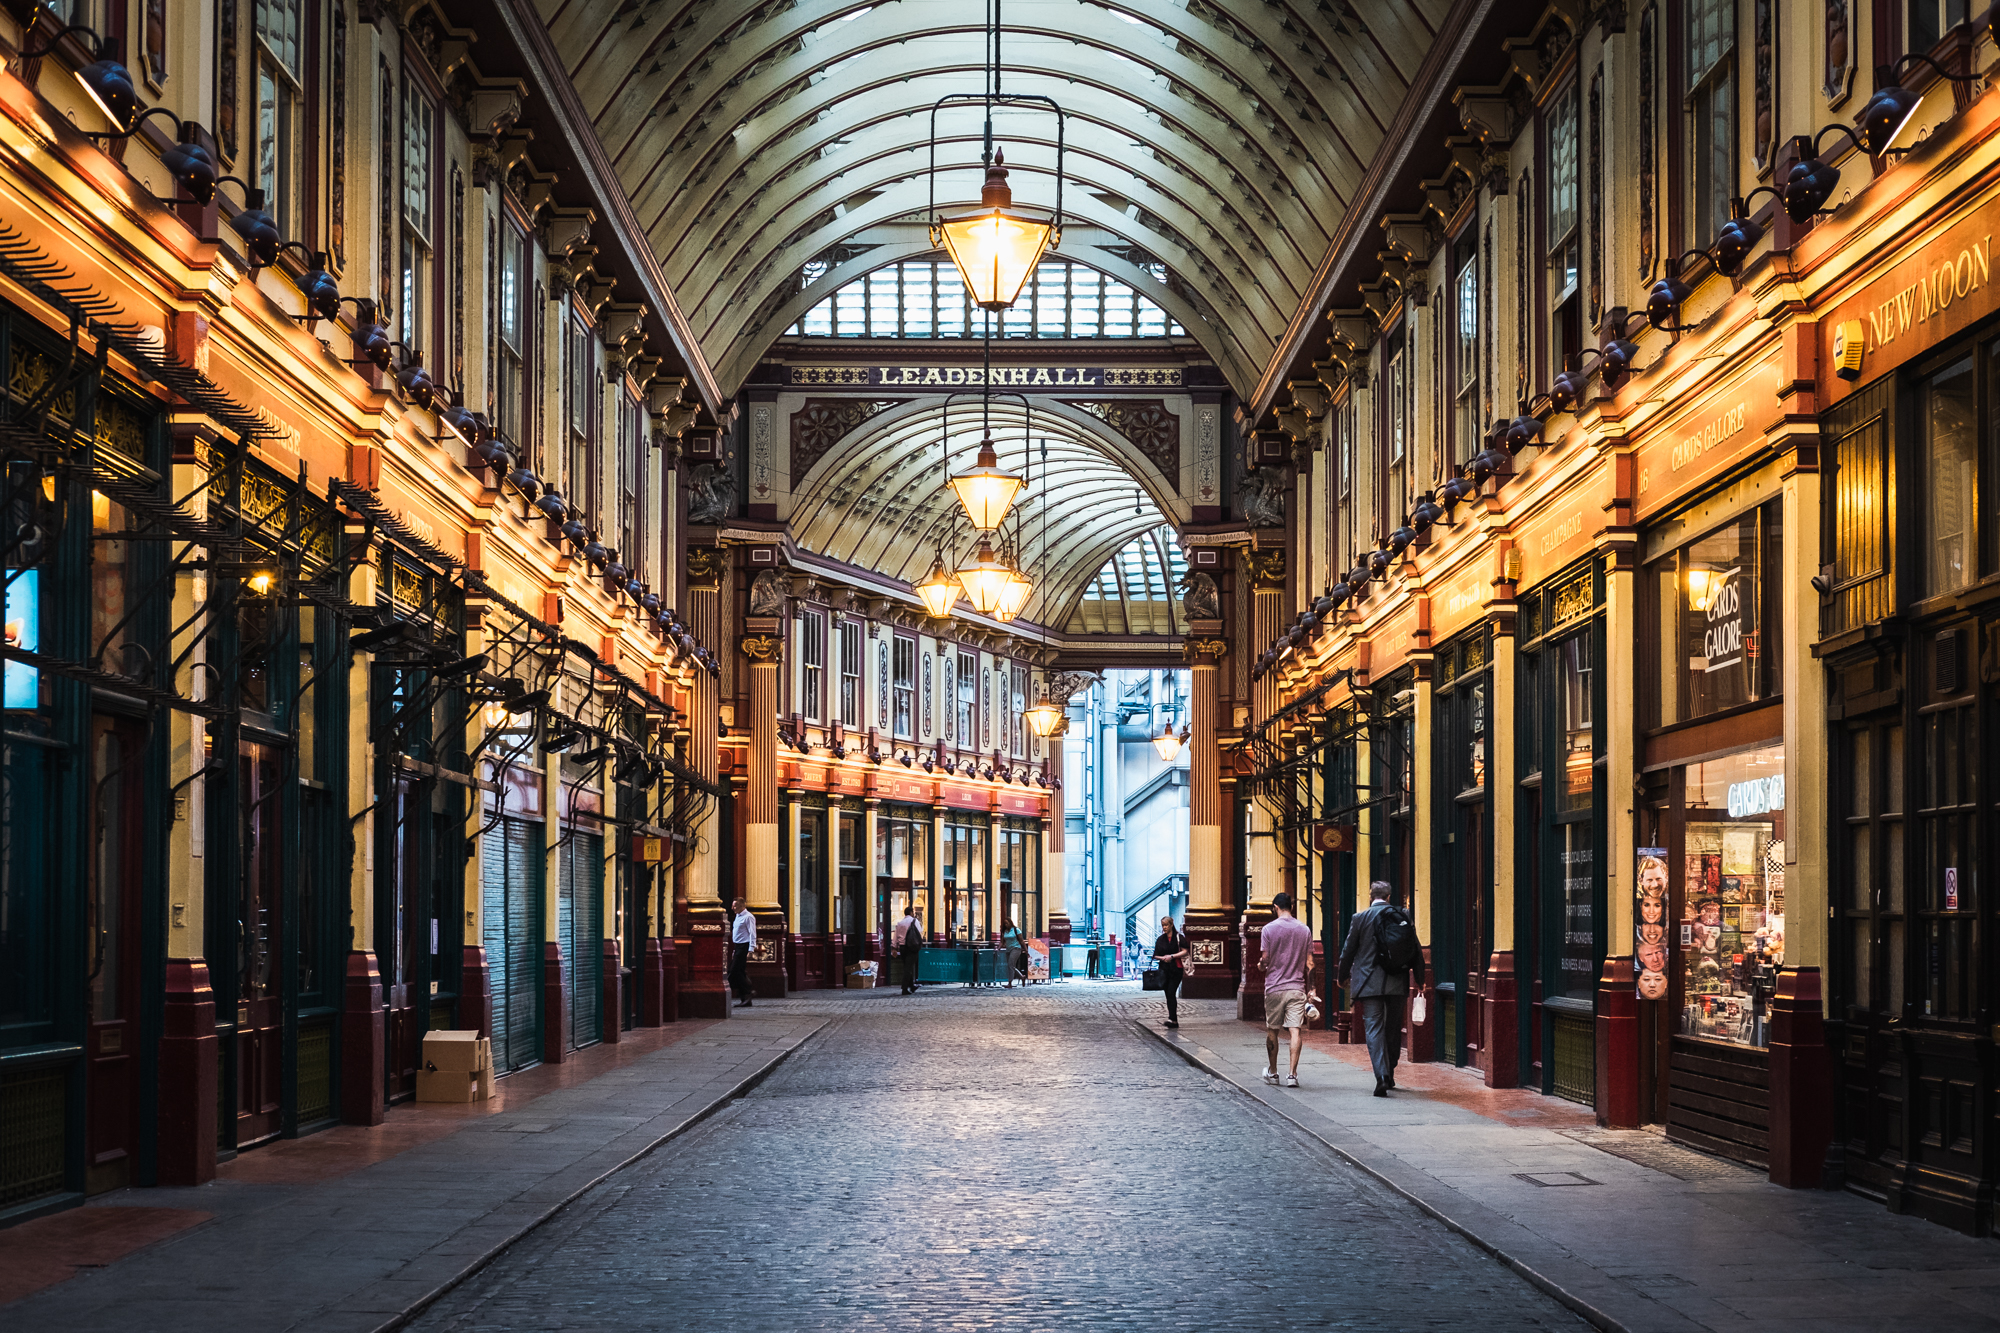 Architecture and street photo of people walking through Leadenhall Market, London by Trevor Sherwin